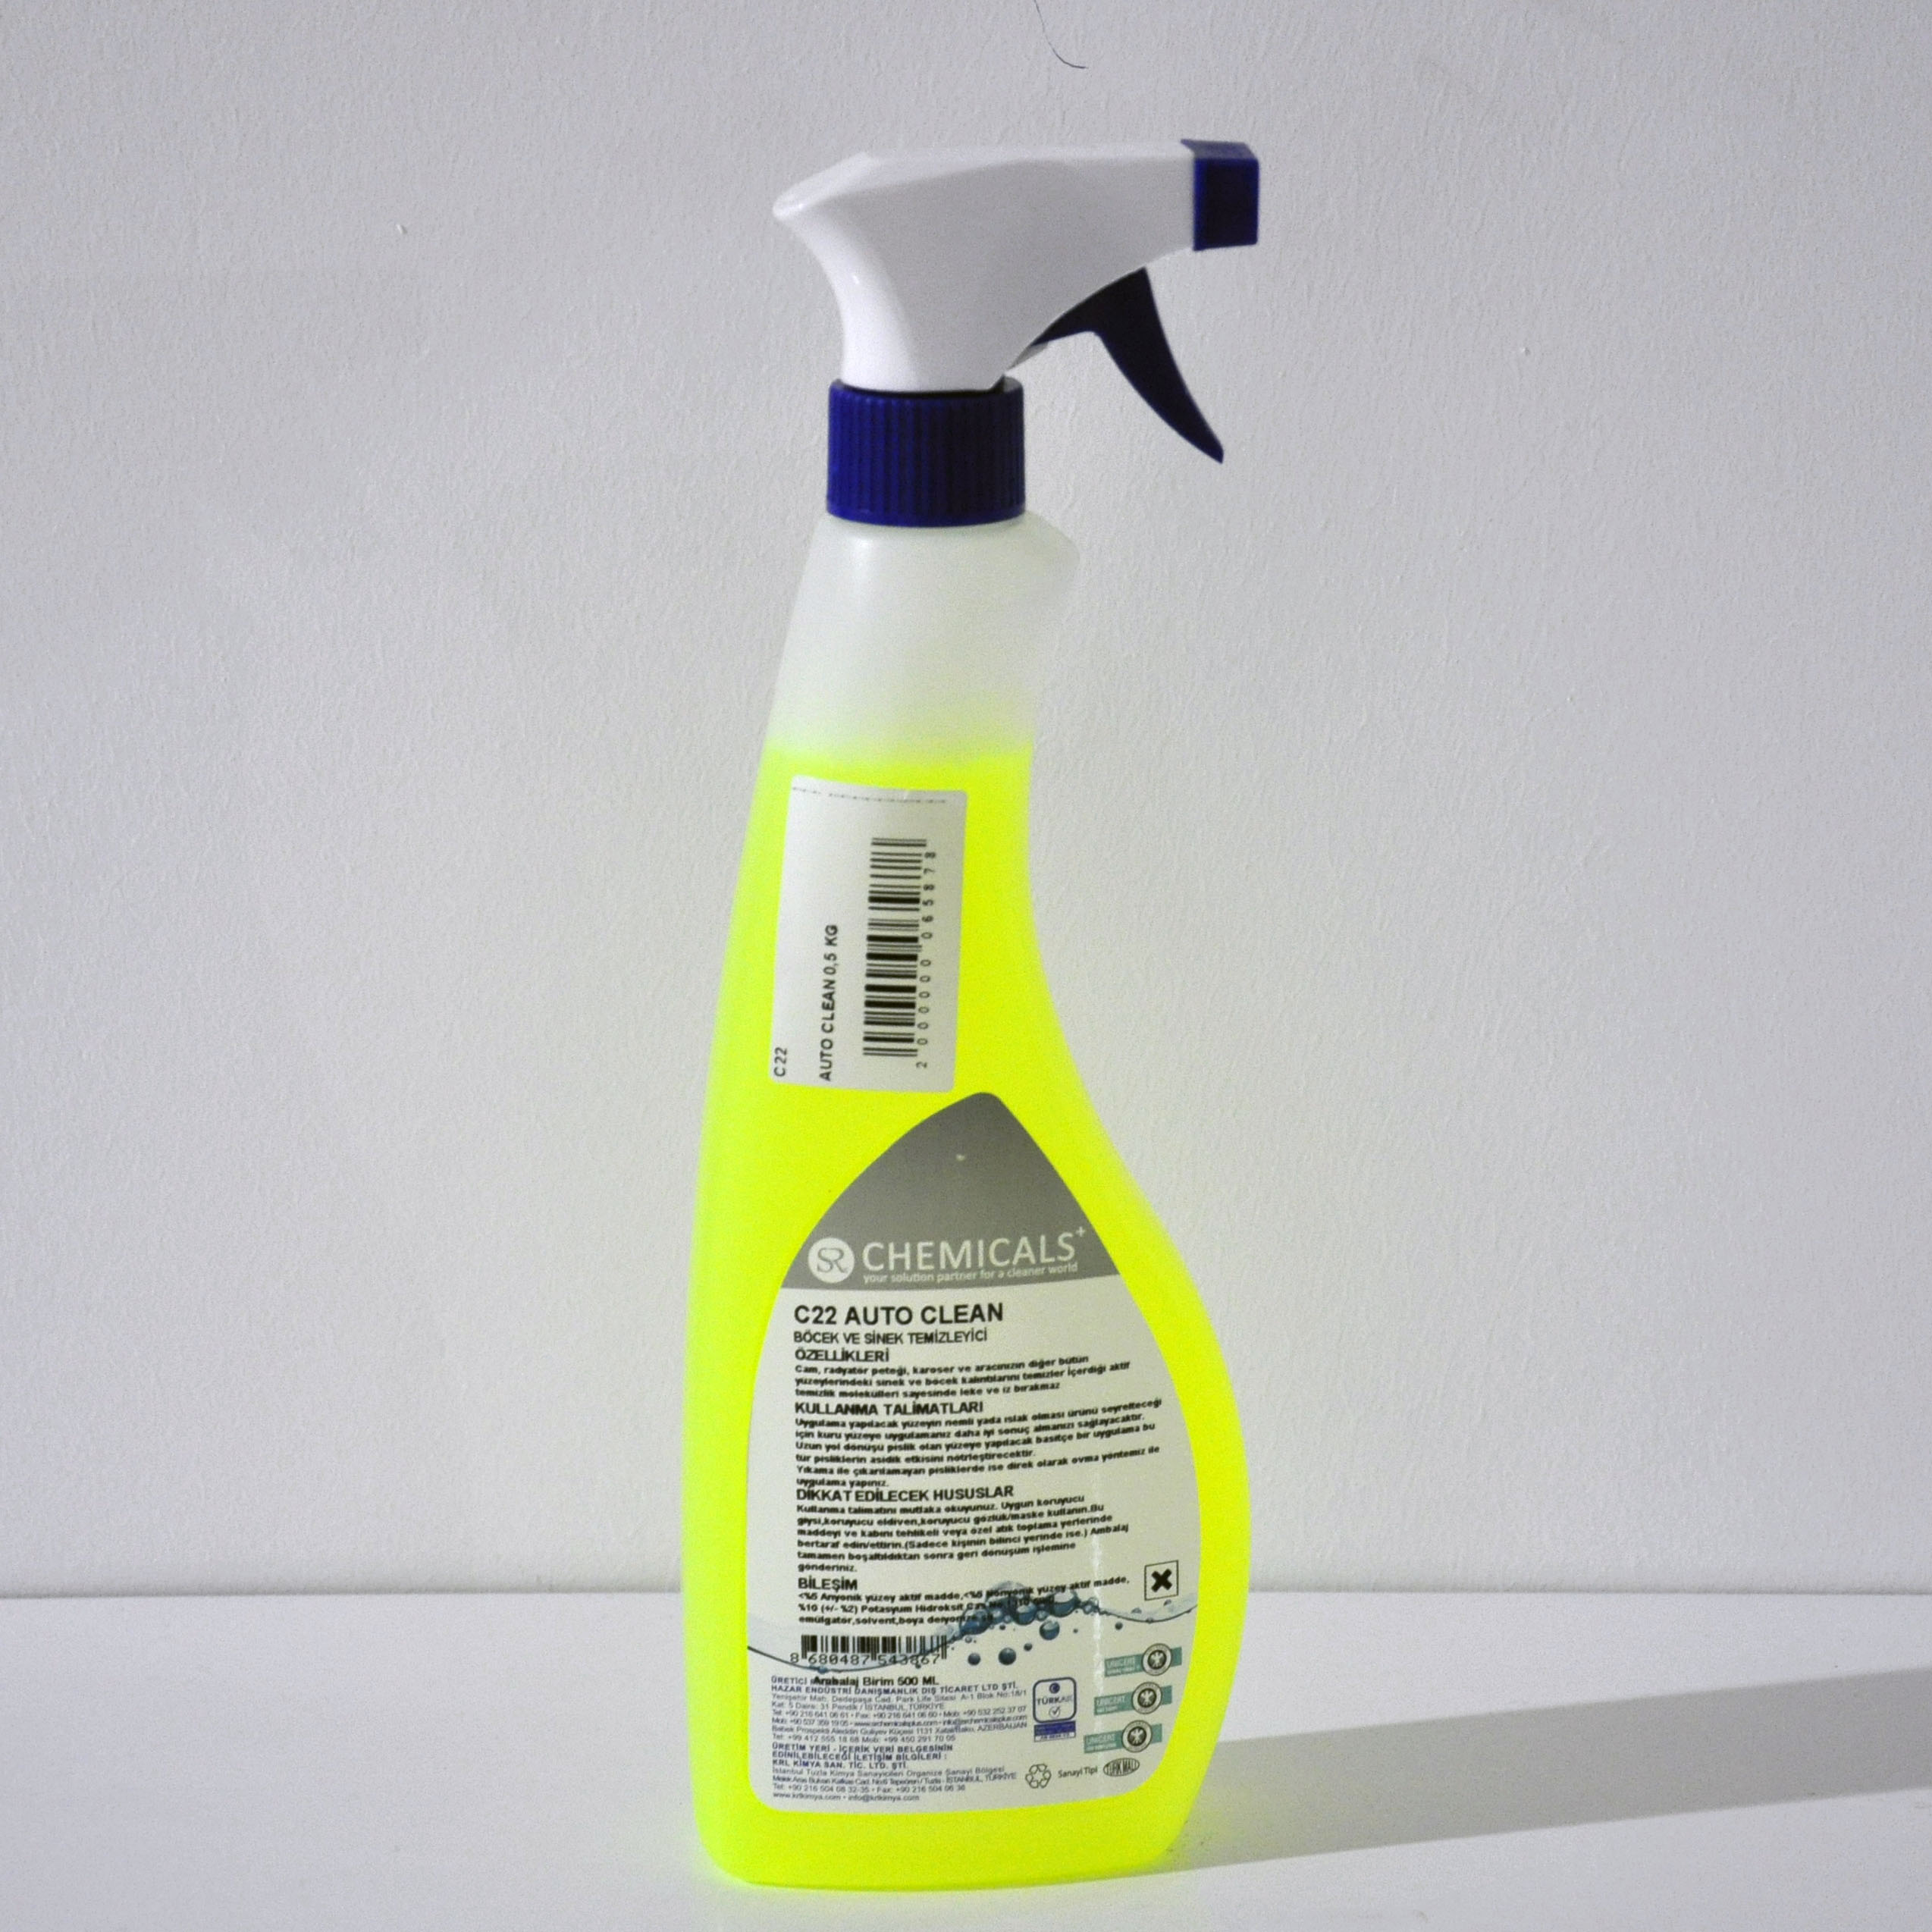 INSECT CLEANER